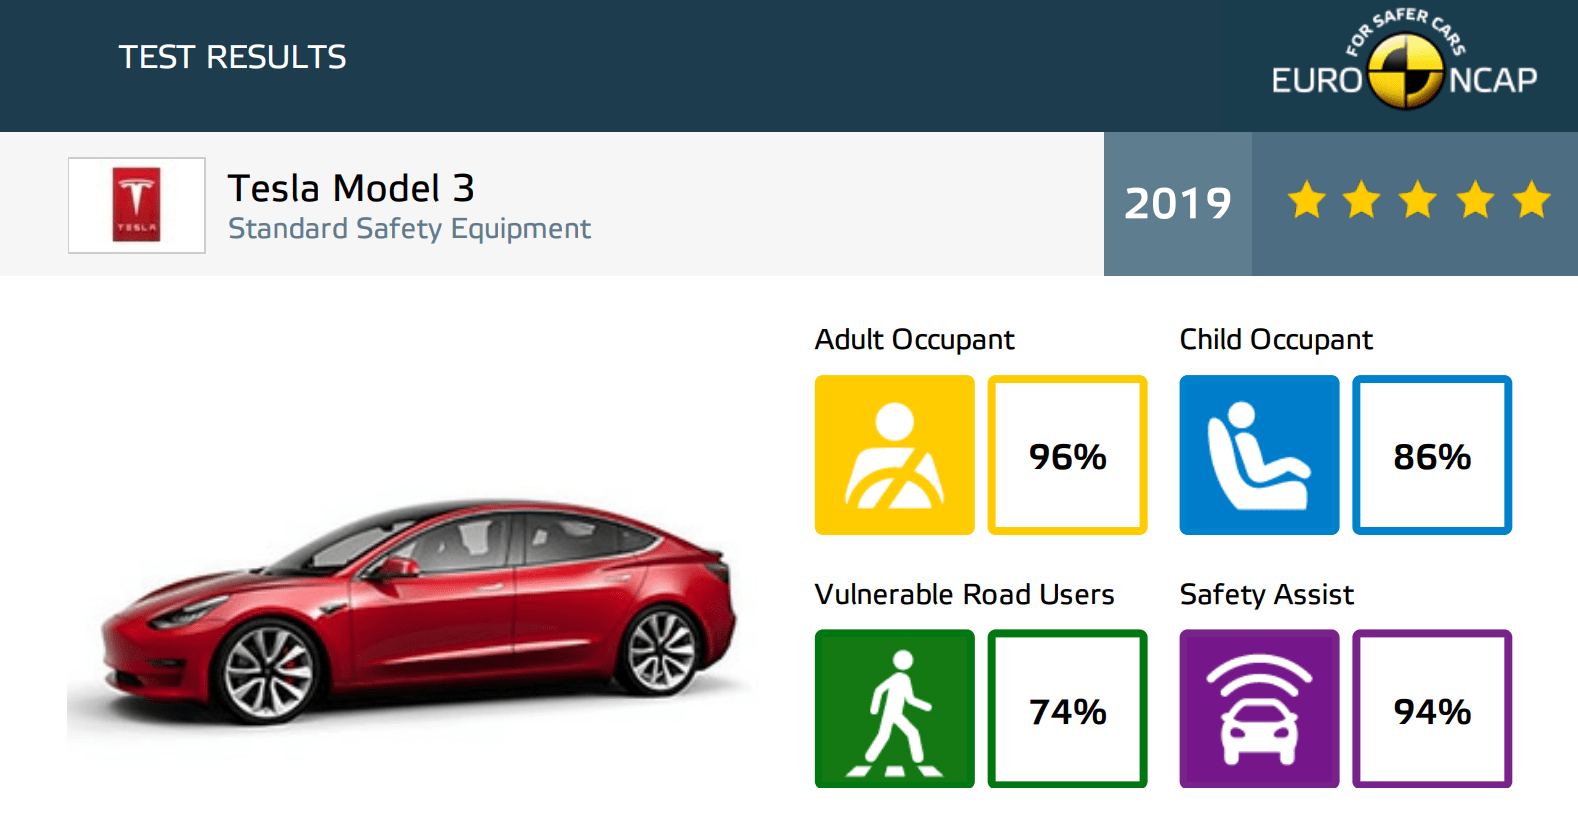 tesla model 3 euro ncap crash test